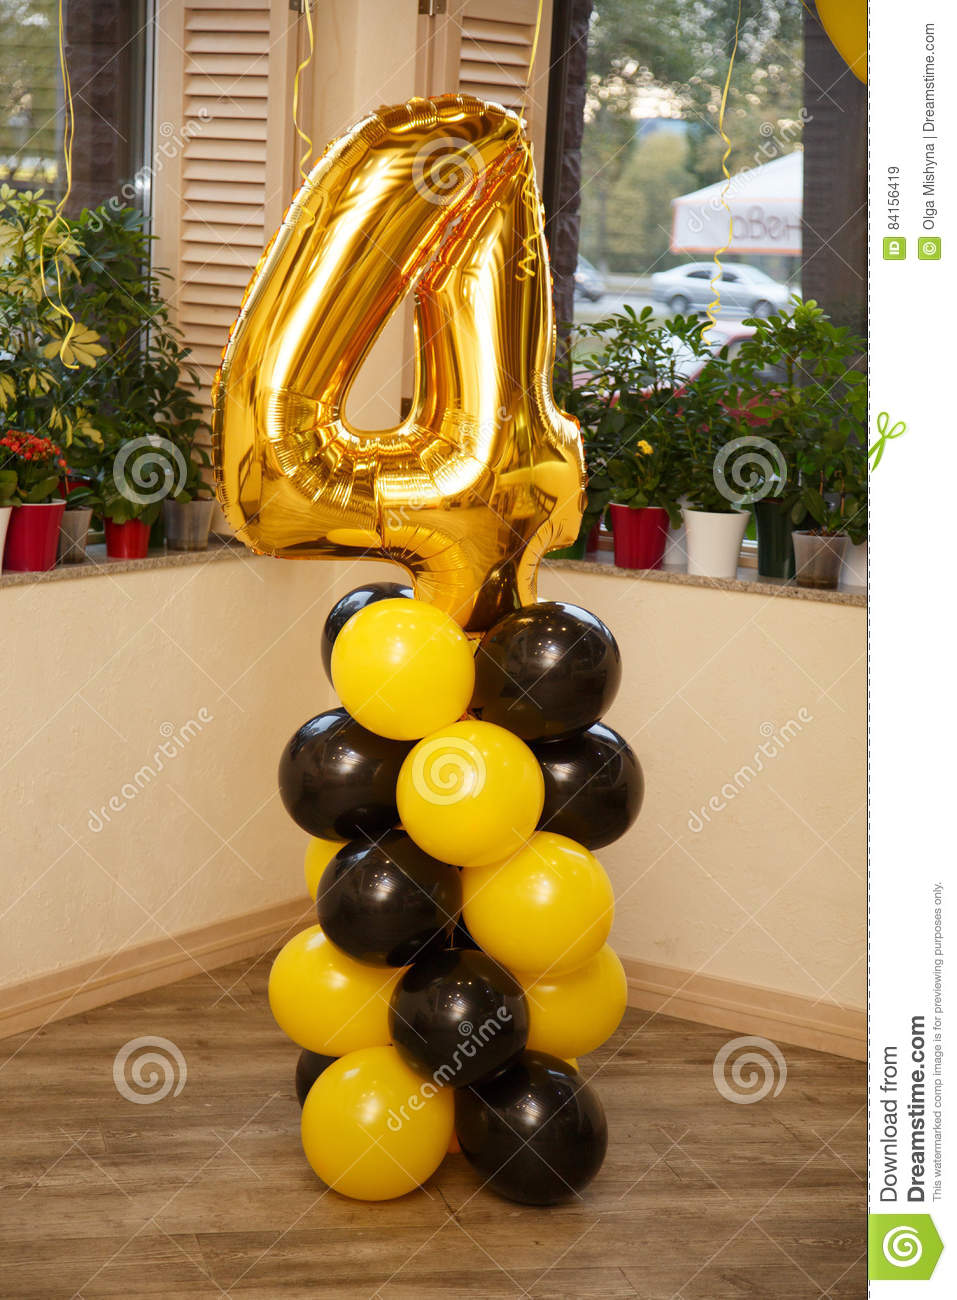 Birthday Party For Child Four Years Old Yellow And Black Colors Stylish Decorations Little Boy On His Fourth